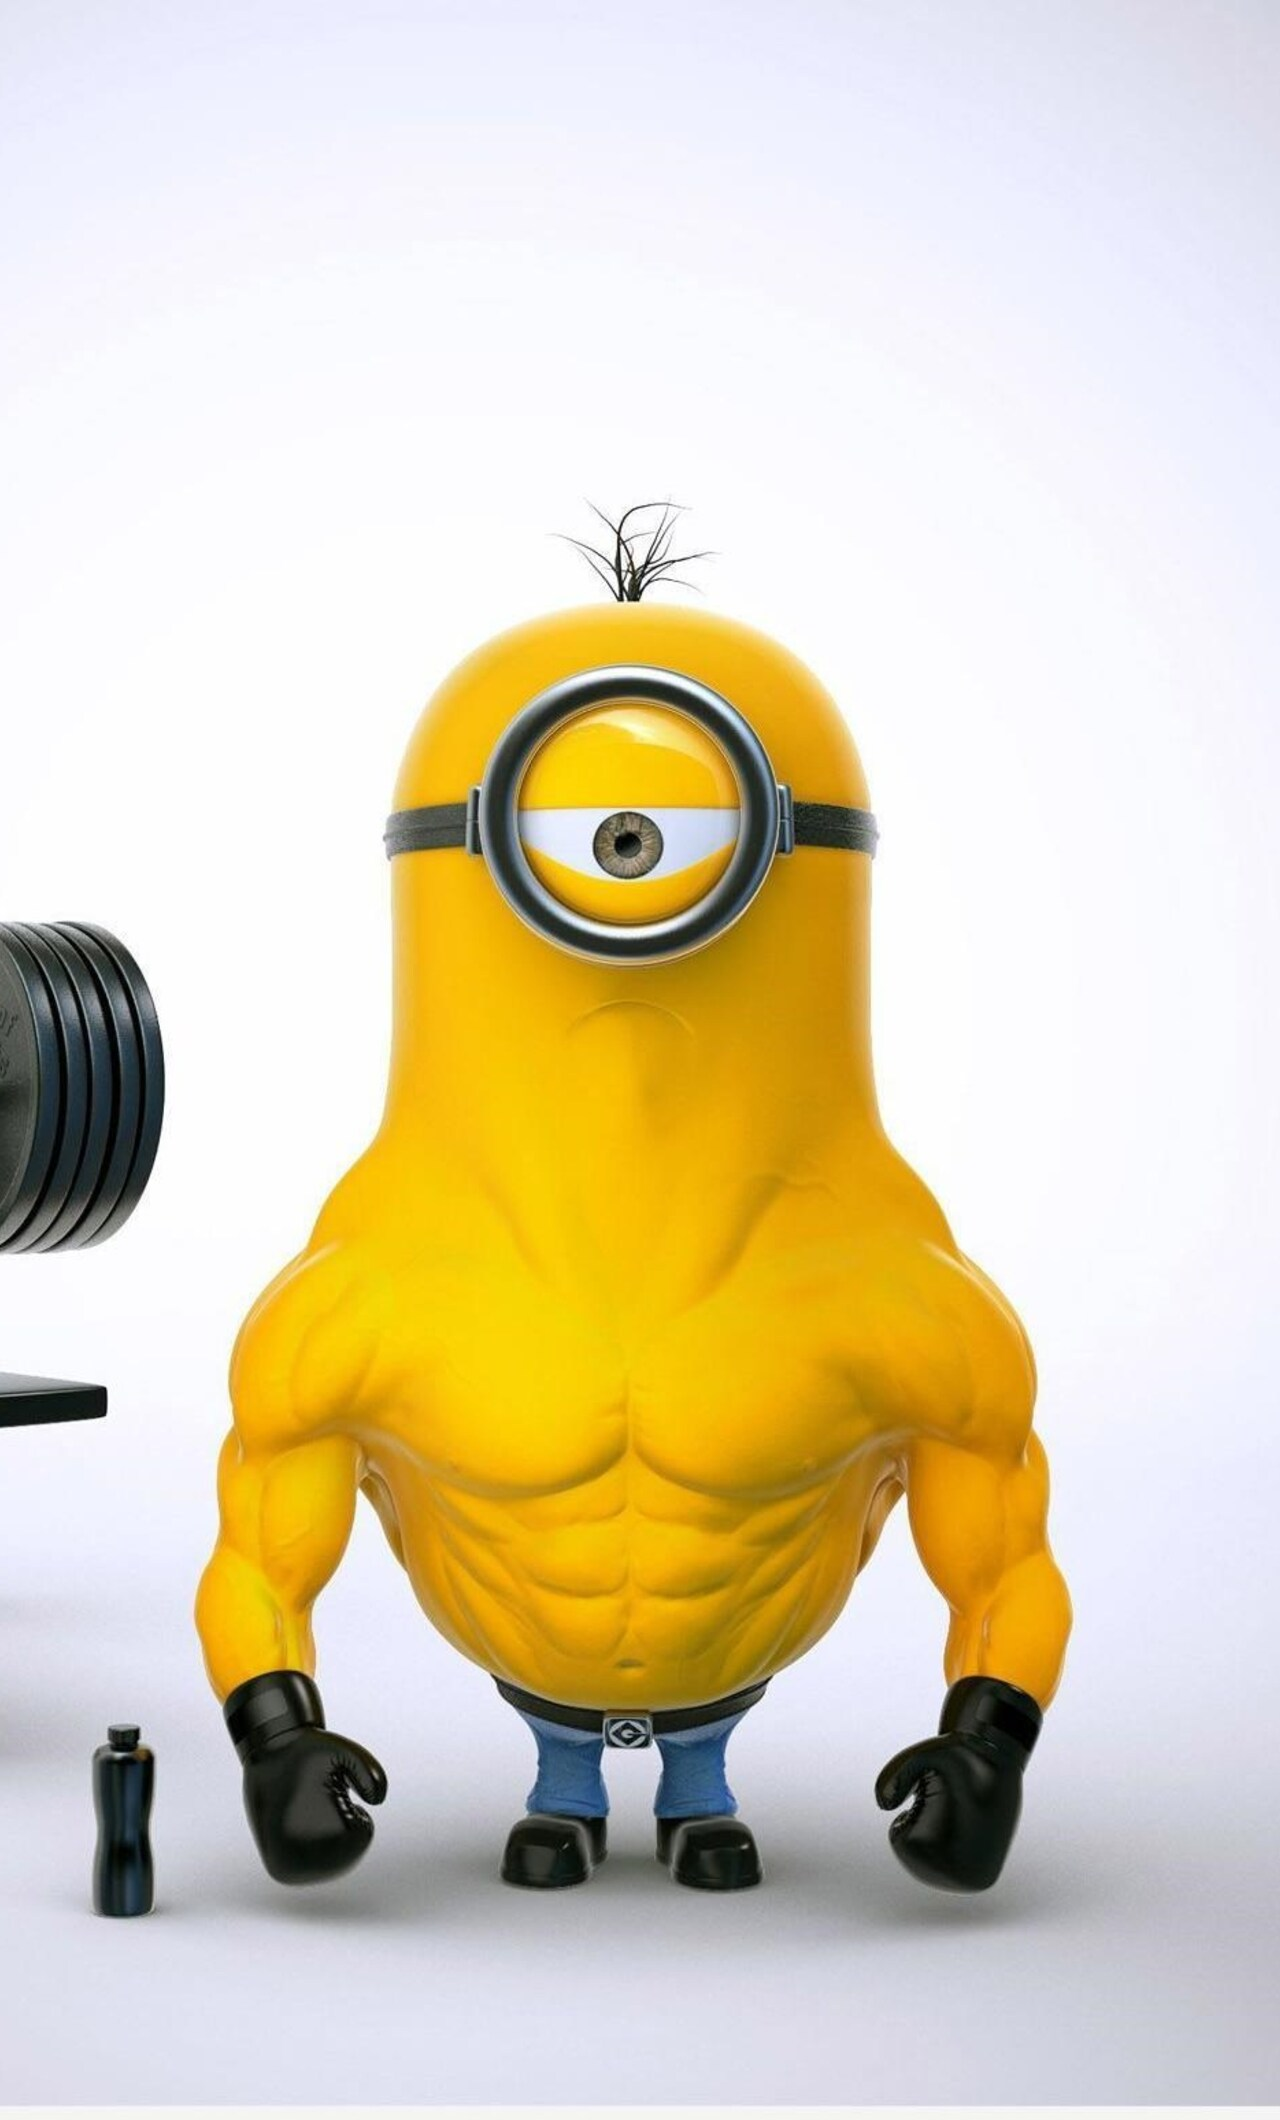 1280x2120 bodybuilder minion iphone 6+ hd 4k wallpapers, images